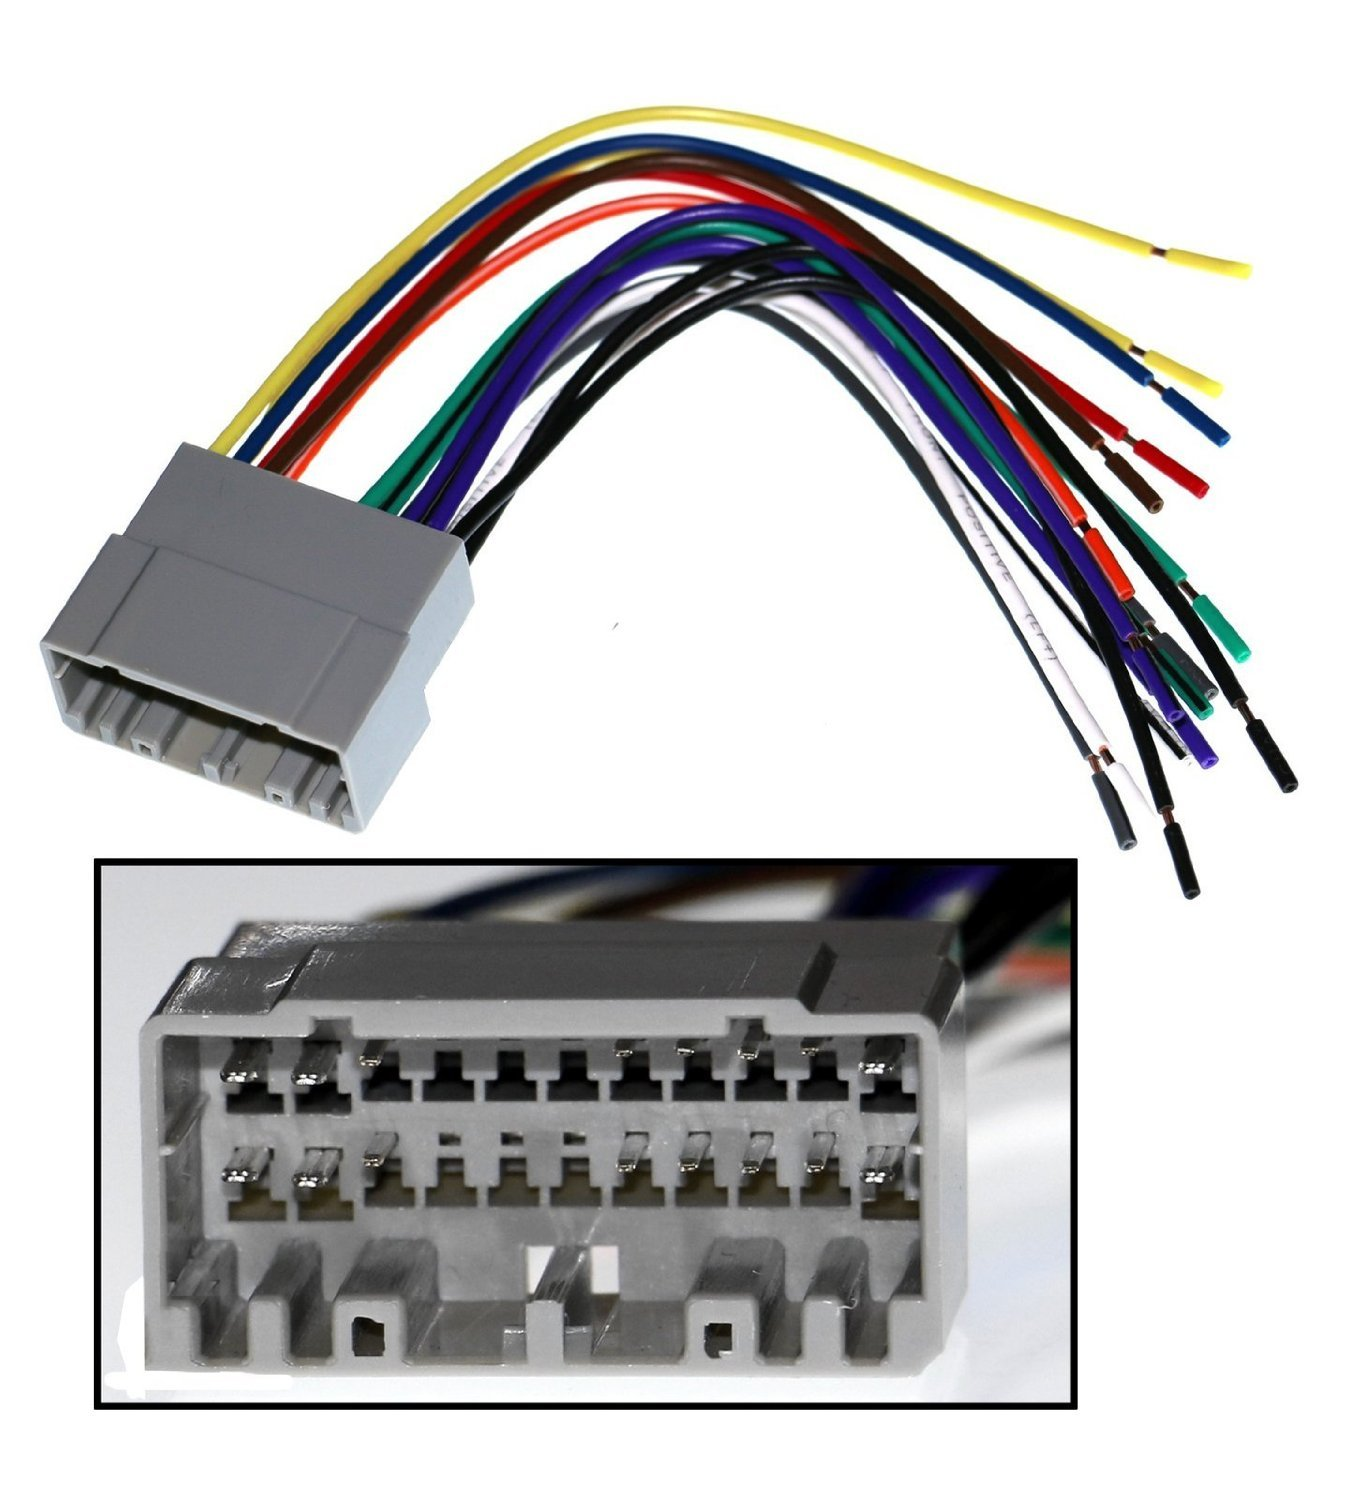 710Q%2BKgavVL._SL1500_ amazon com pioneer car stereo reciever dash install mounting car audio wiring harness at gsmx.co